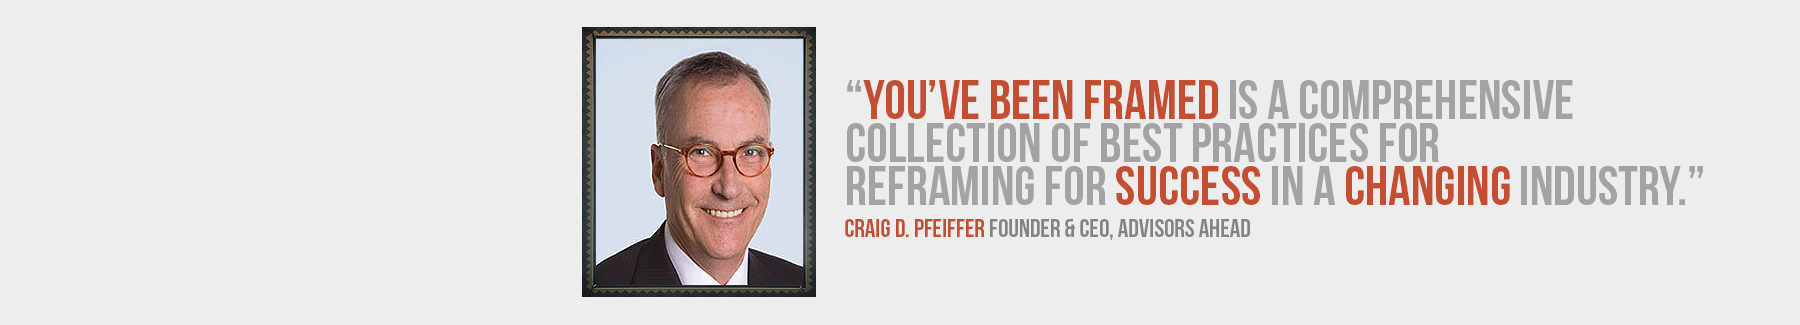 craig pfeiffer advisors ahead